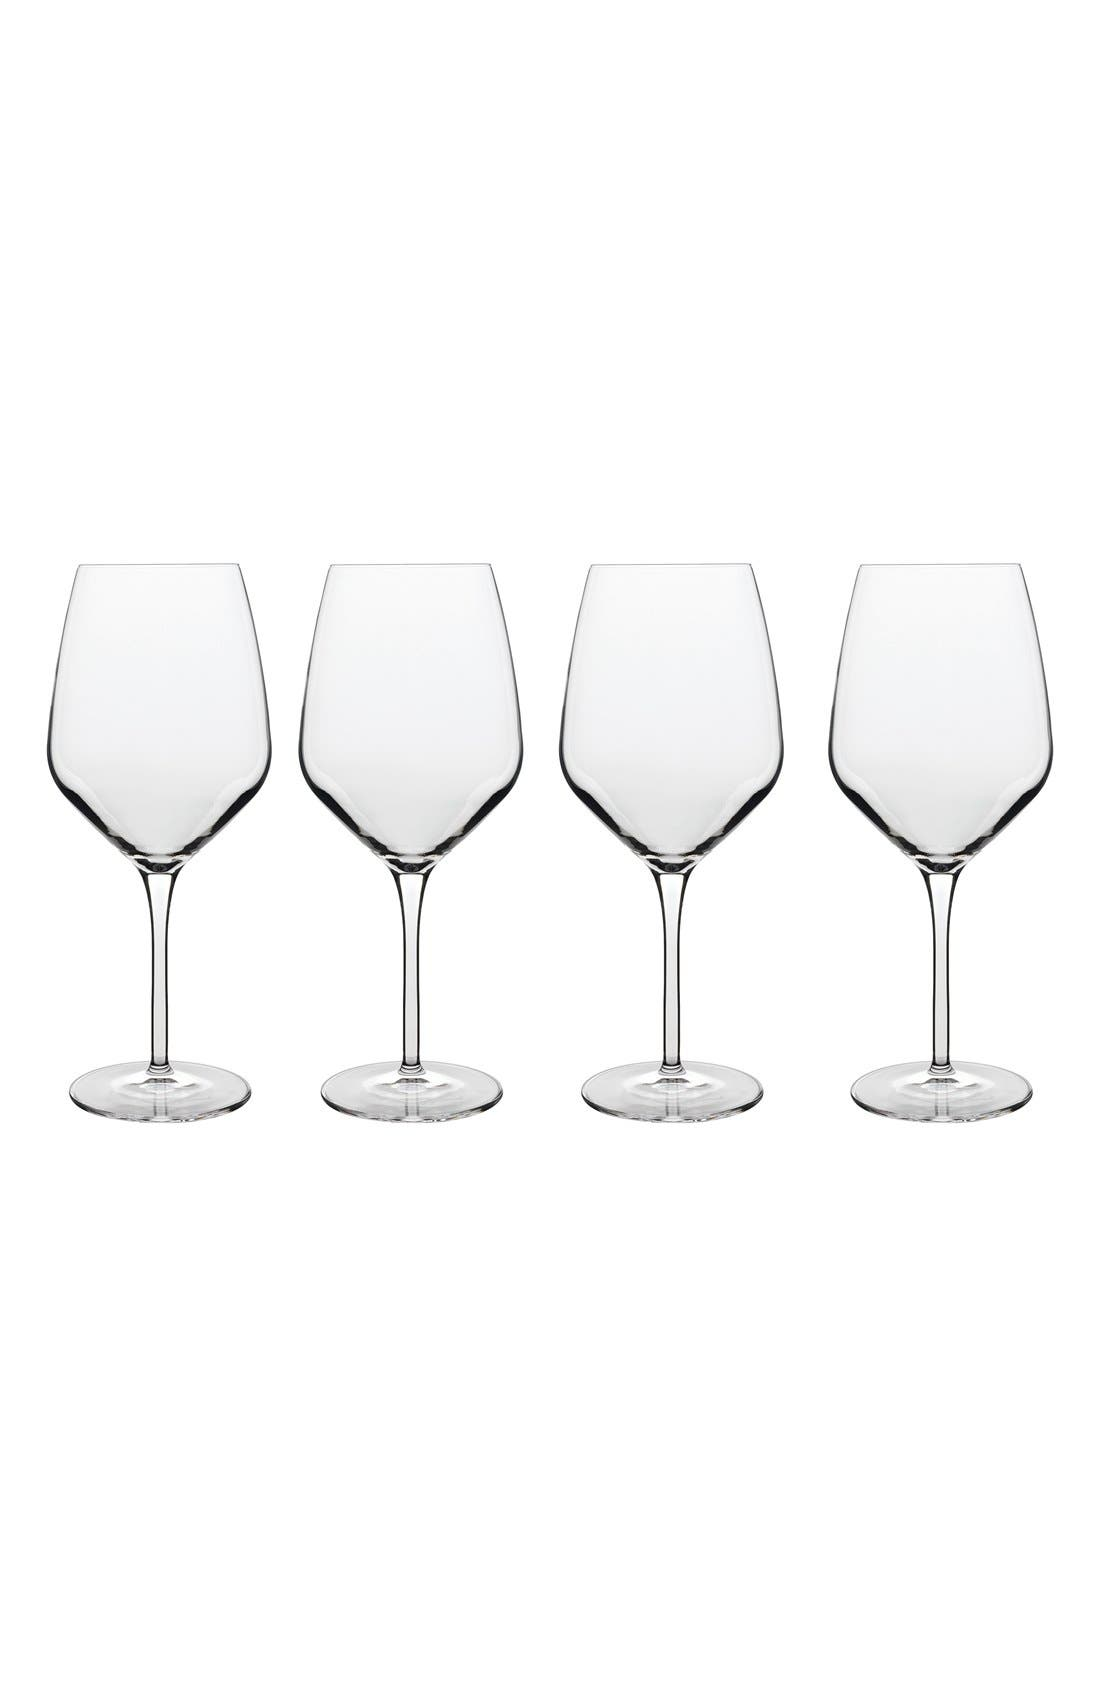 LUIGI BORMIOLI Prestige Set of 4 Wine Glasses